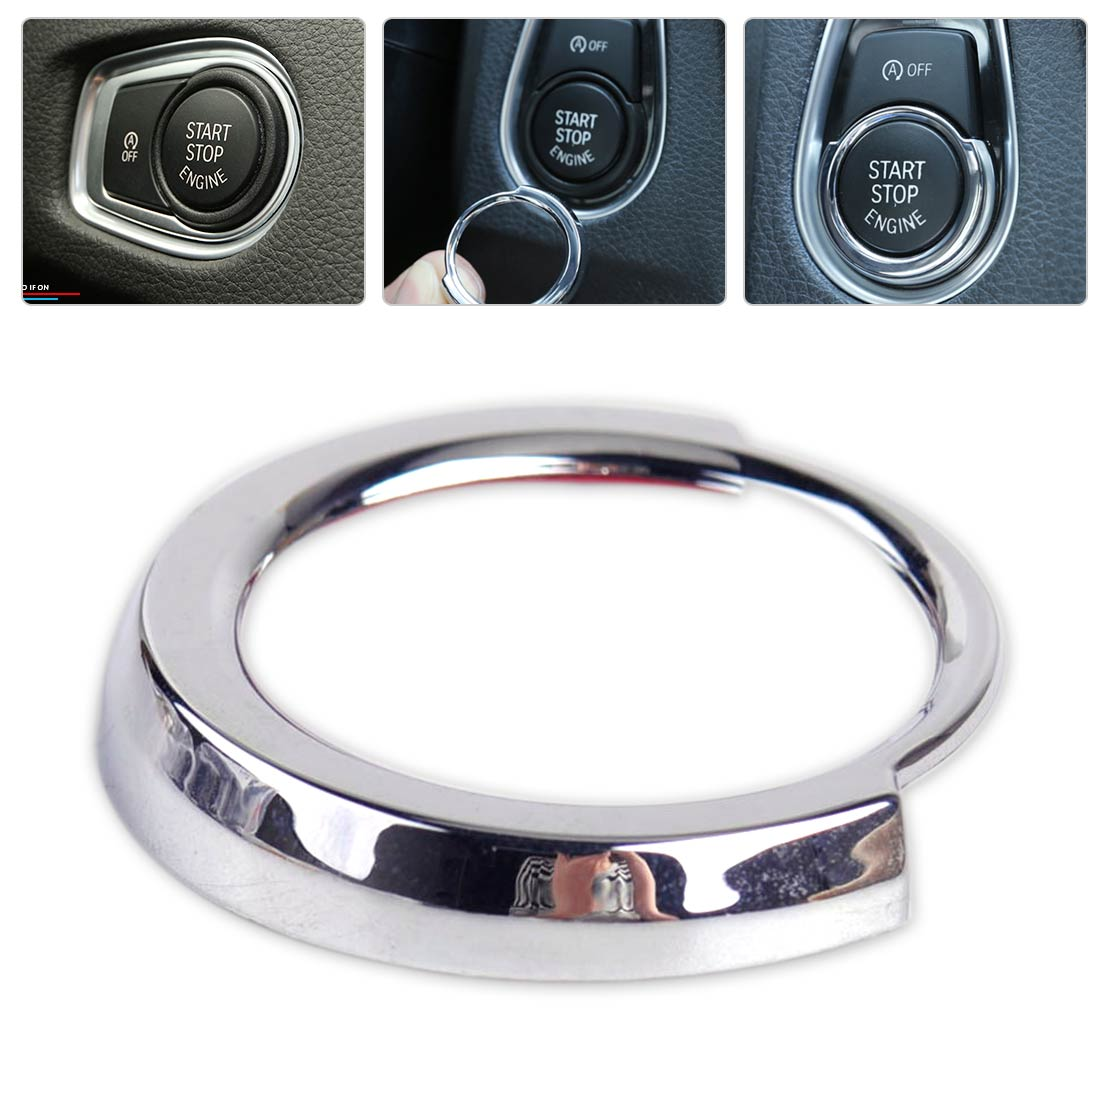 beler Car Accessories Chrome Plated Engine Start Stop Button Switch Decorative Frame Cover Trim for BMW F30 F20 2013 2014-2016